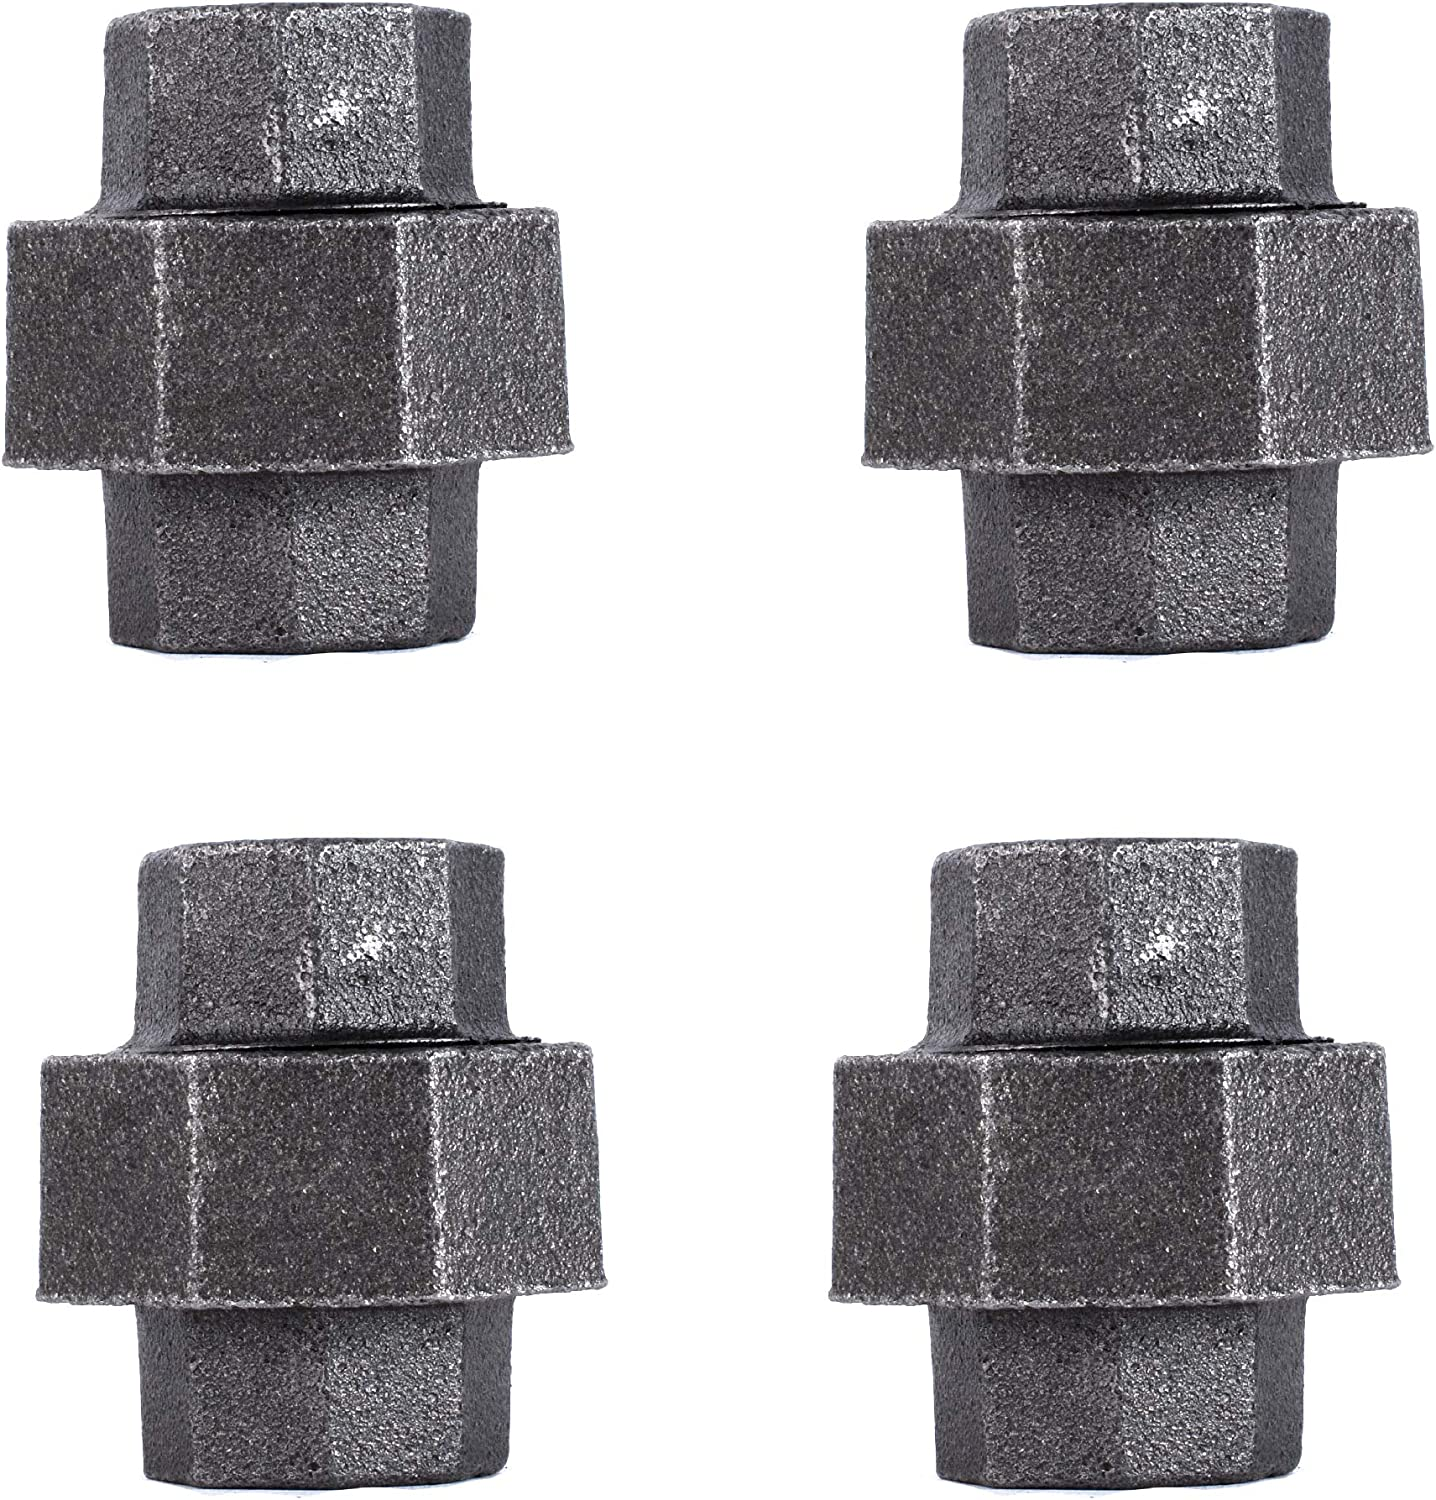 1/2 Inch Union Industrial Malleable Cast Iron Pipe Fitting 4 Pack by Pipe Decor, Pipe Components For Building Tables, Chairs, Shelving, and Custom Furniture, Fits Half Inch Pipes, Four Pack